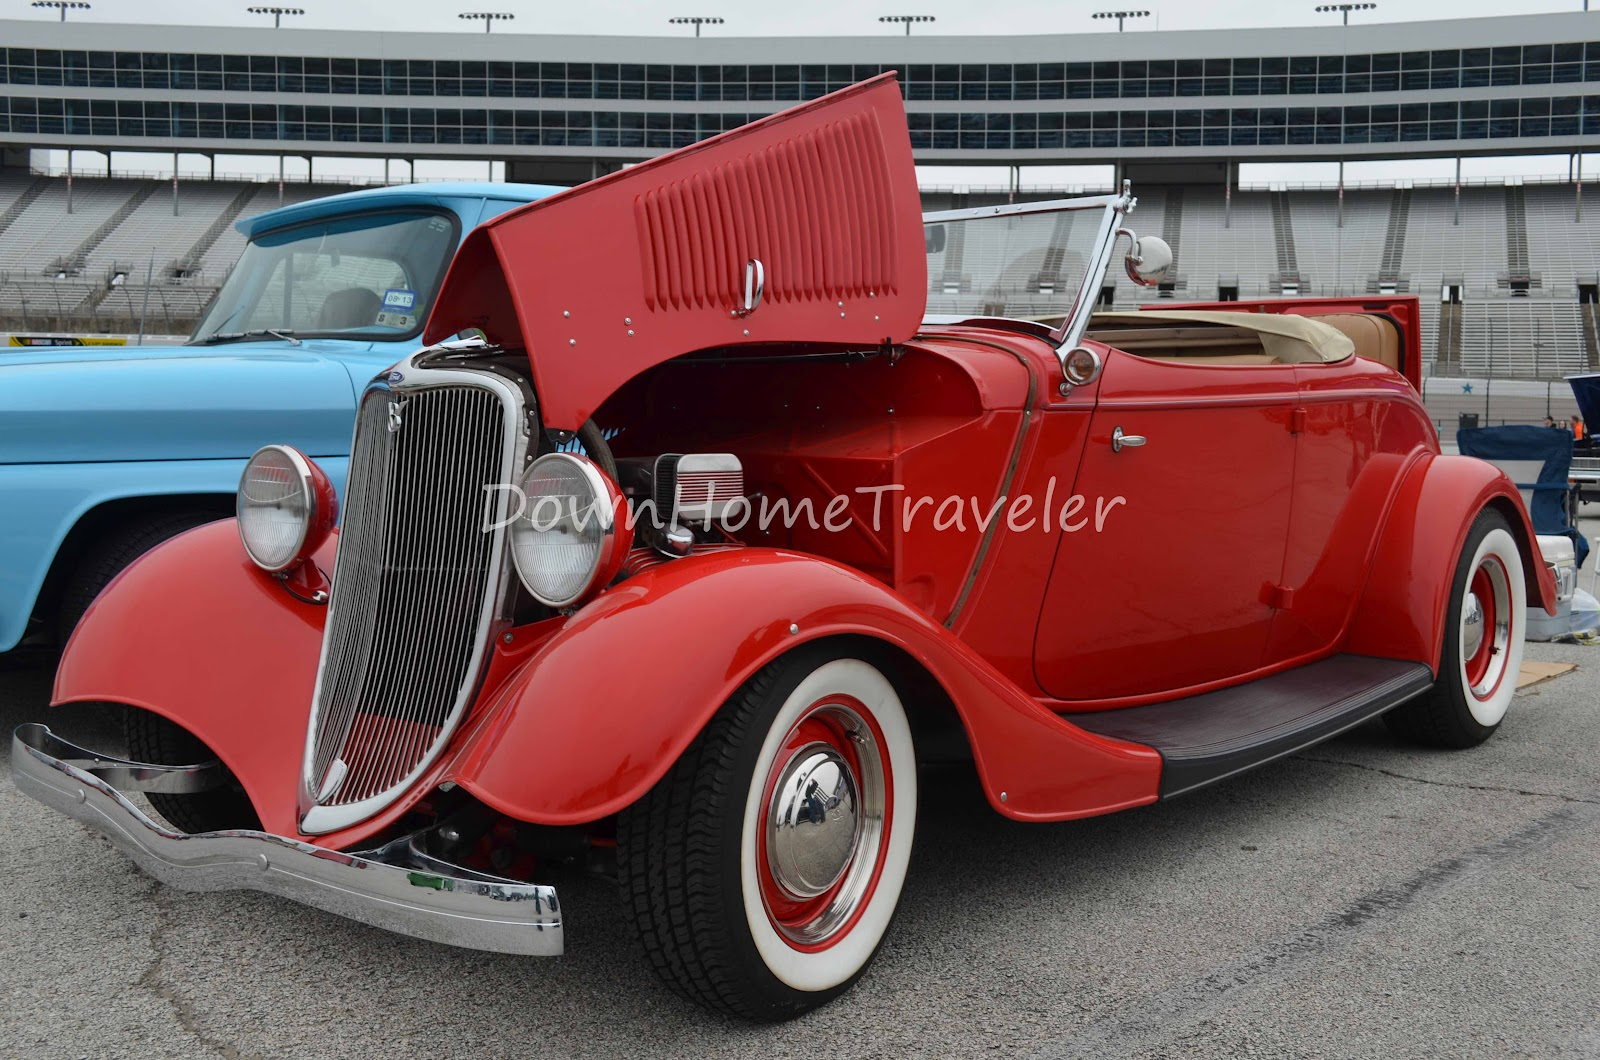 good guys car show texas motor speedway down home traveler